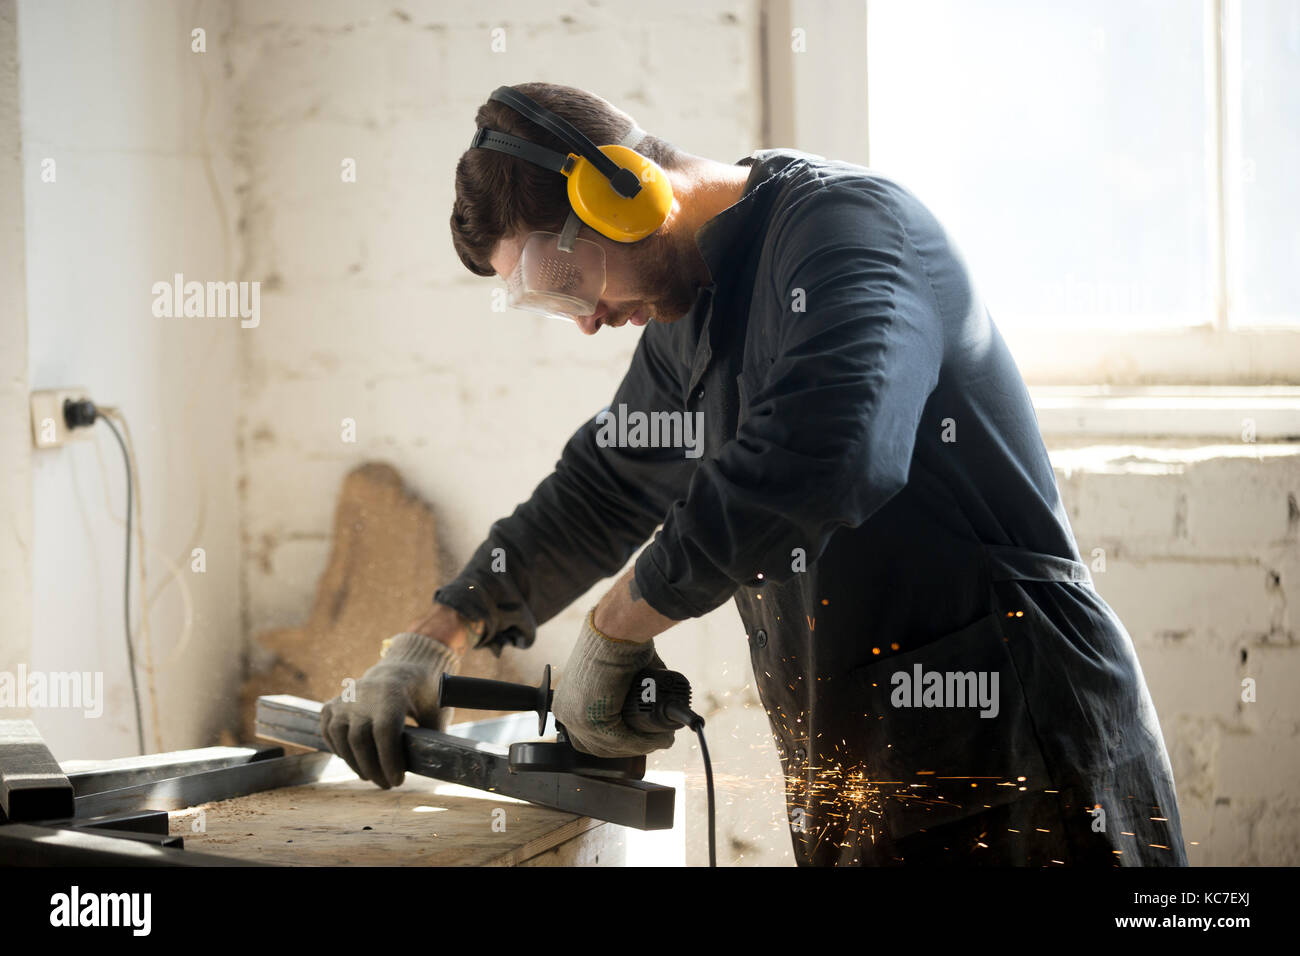 Worker in protective clothes working in workshop - Stock Image